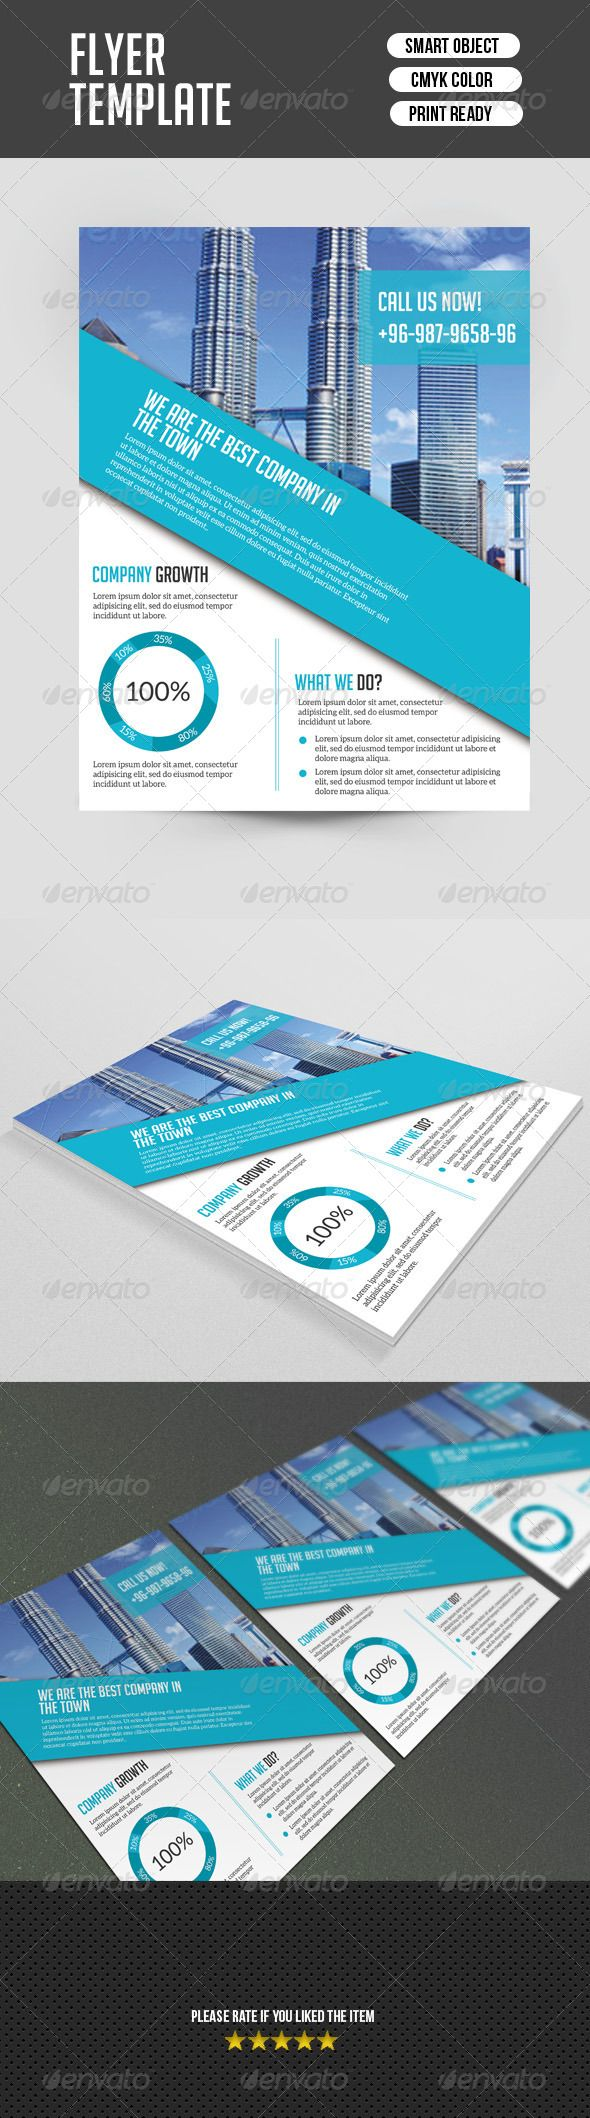 27 best business flyer templates images on pinterest business corporate flyer template cheaphphosting